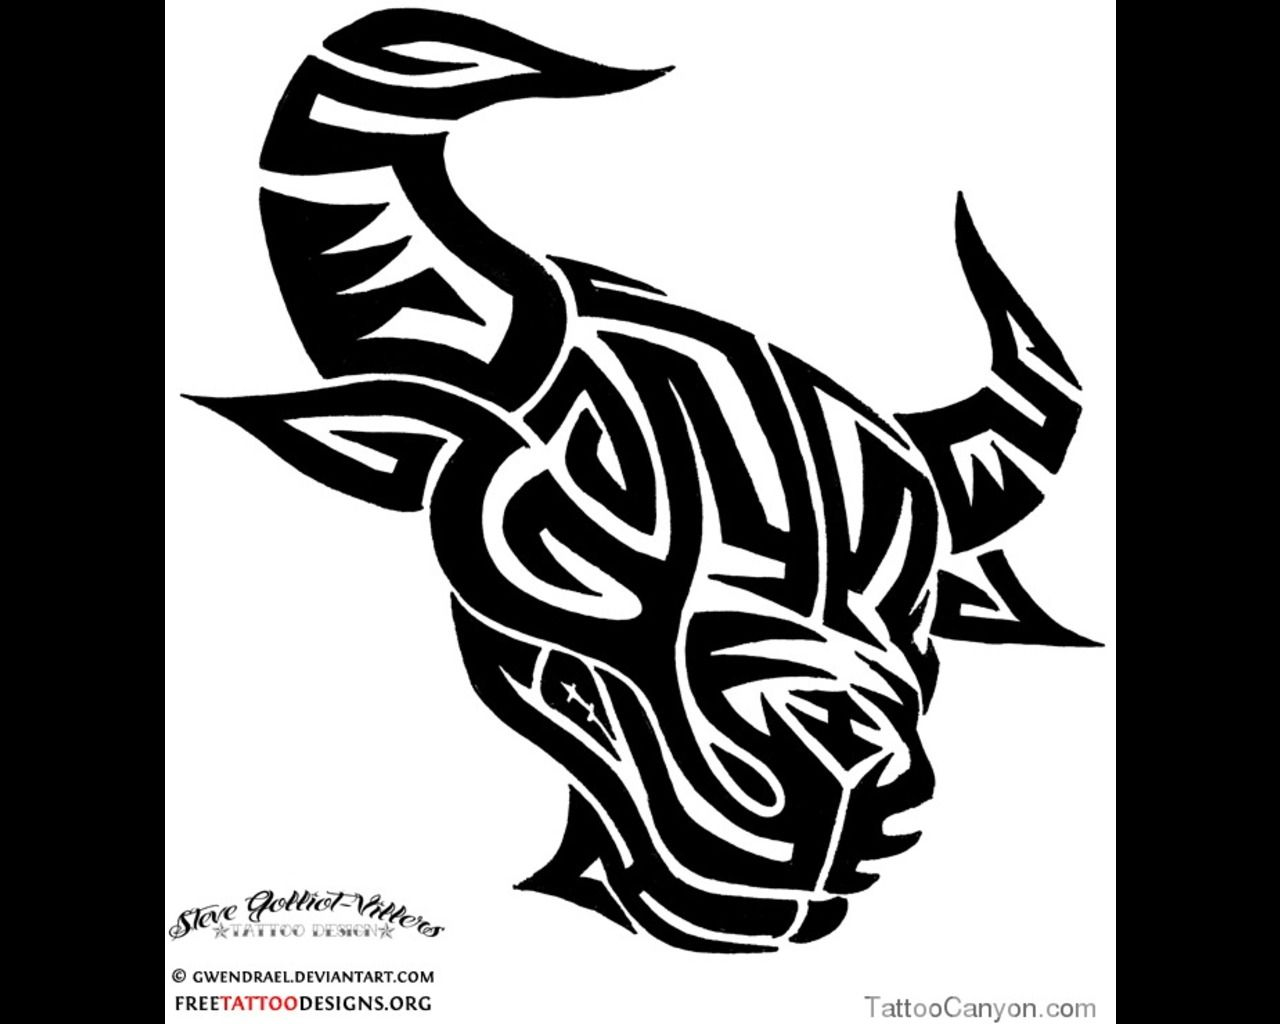 Pics photos taurus tattoos bull tattoo art - Bull Head Art Taurus Tattoostattoo